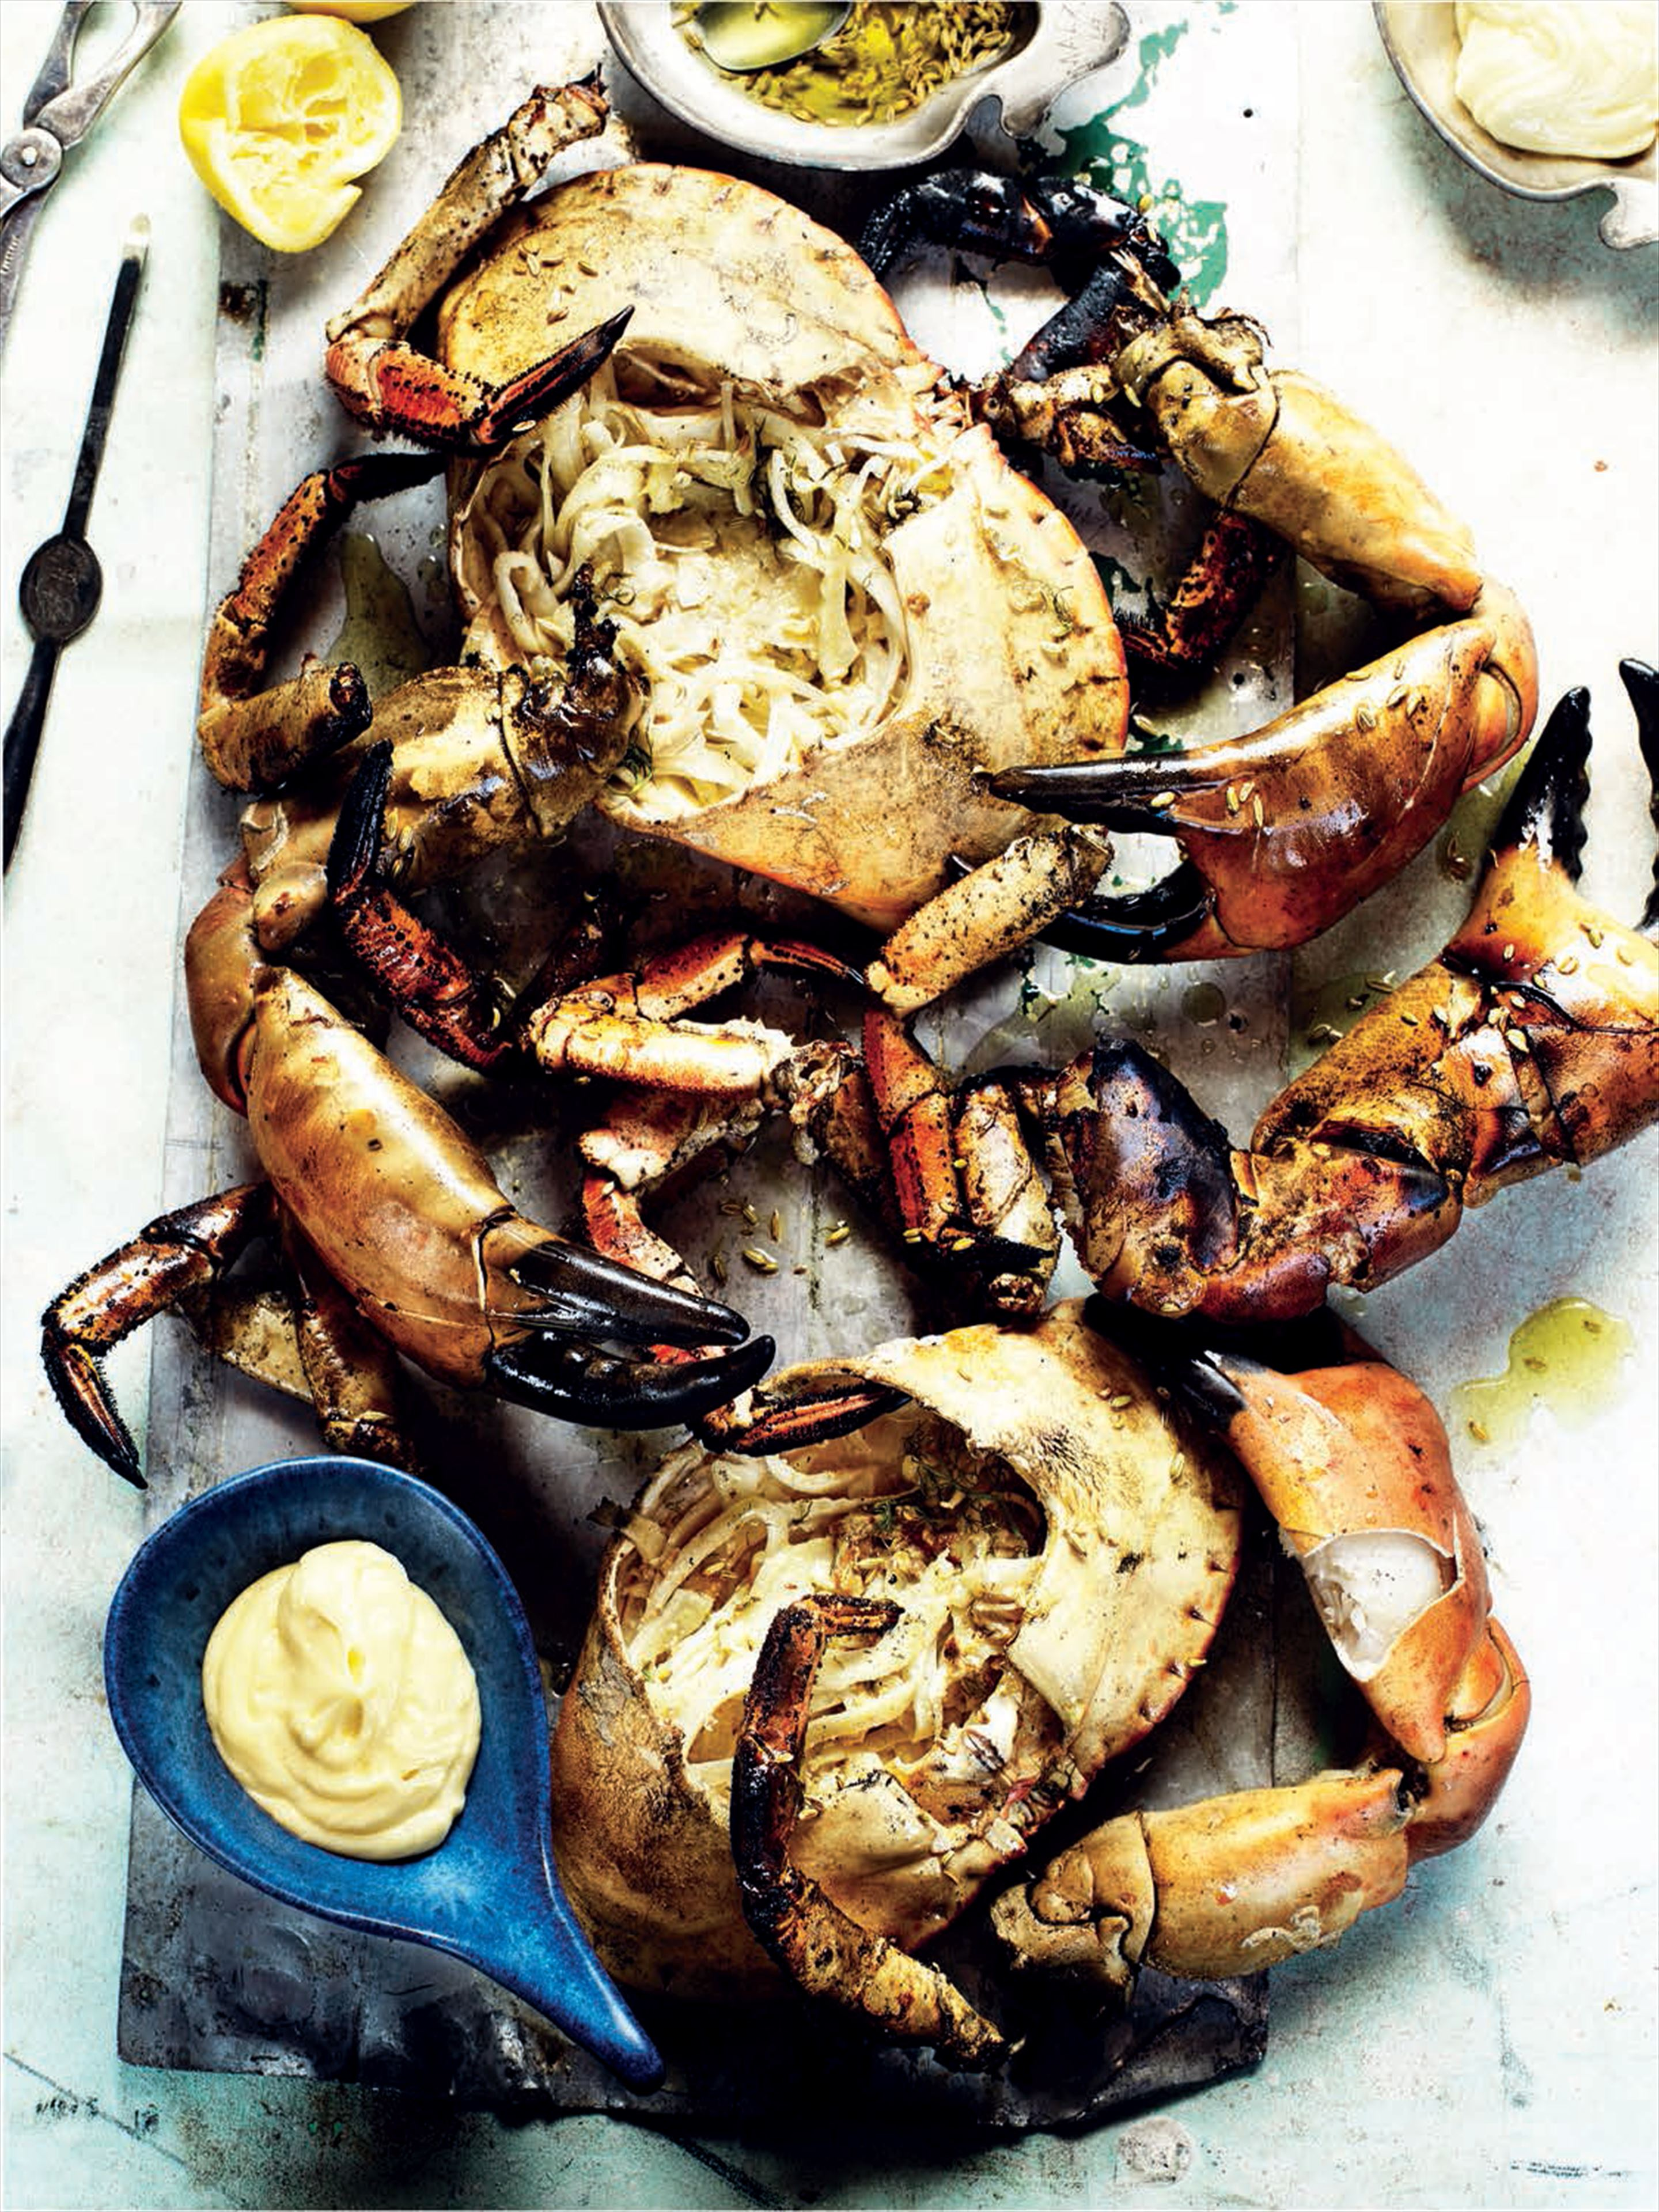 Grilled crab with fennel, lemon and alioli